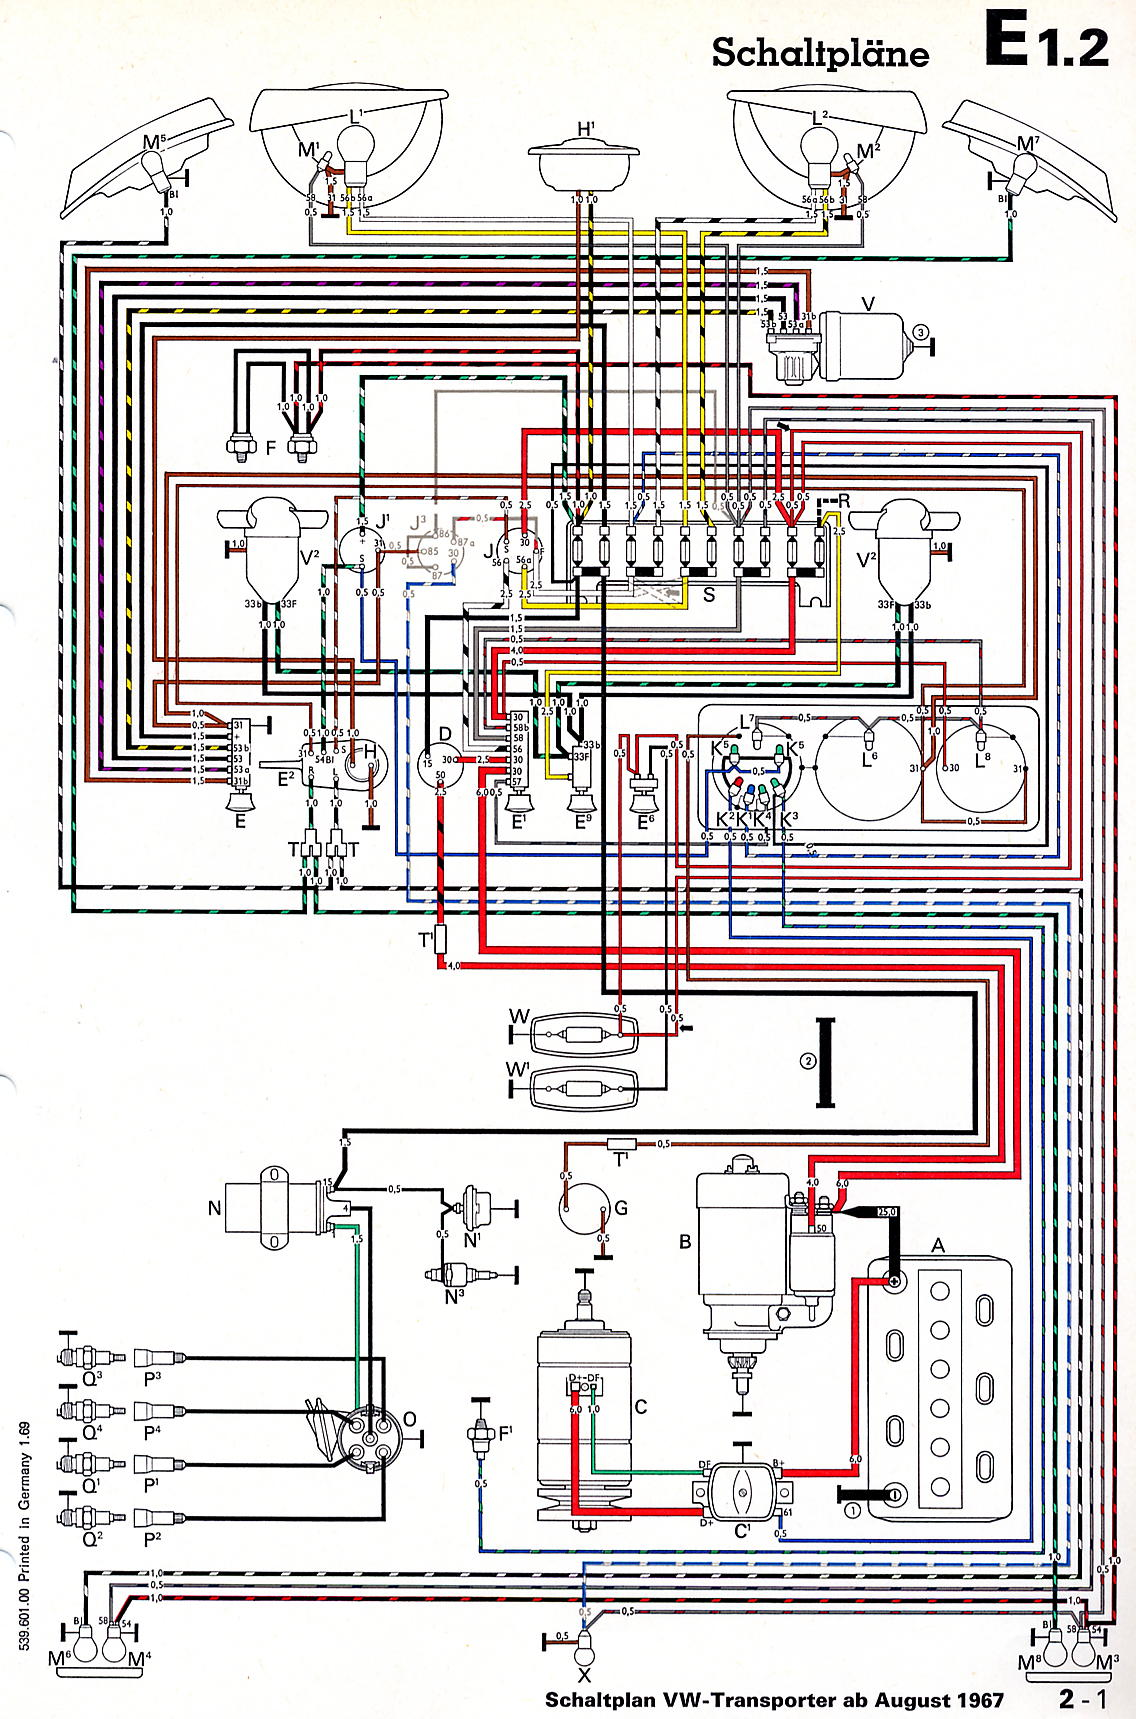 Transporter_from_August_1967 bad boy buggy wiring diagram 36 volt ezgo wiring diagram 1997 vw dune buggy wiring schematic at webbmarketing.co